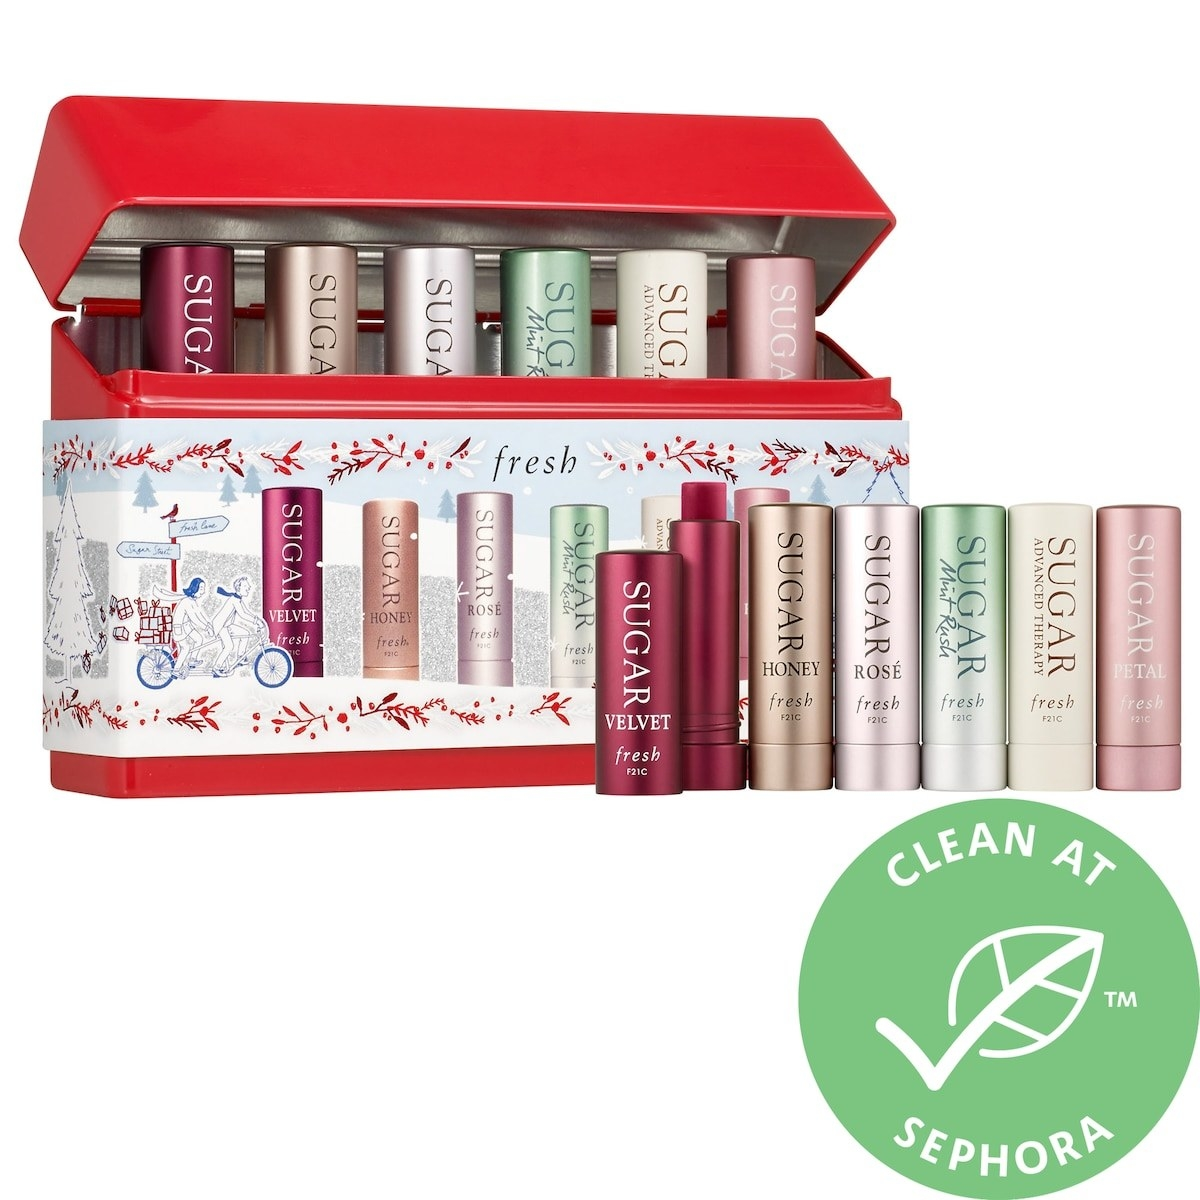 Six lip balm tins inside holiday-themed packaging. These products are formulated without sulfates (SLS and SLES), parabens, phthalates, and more